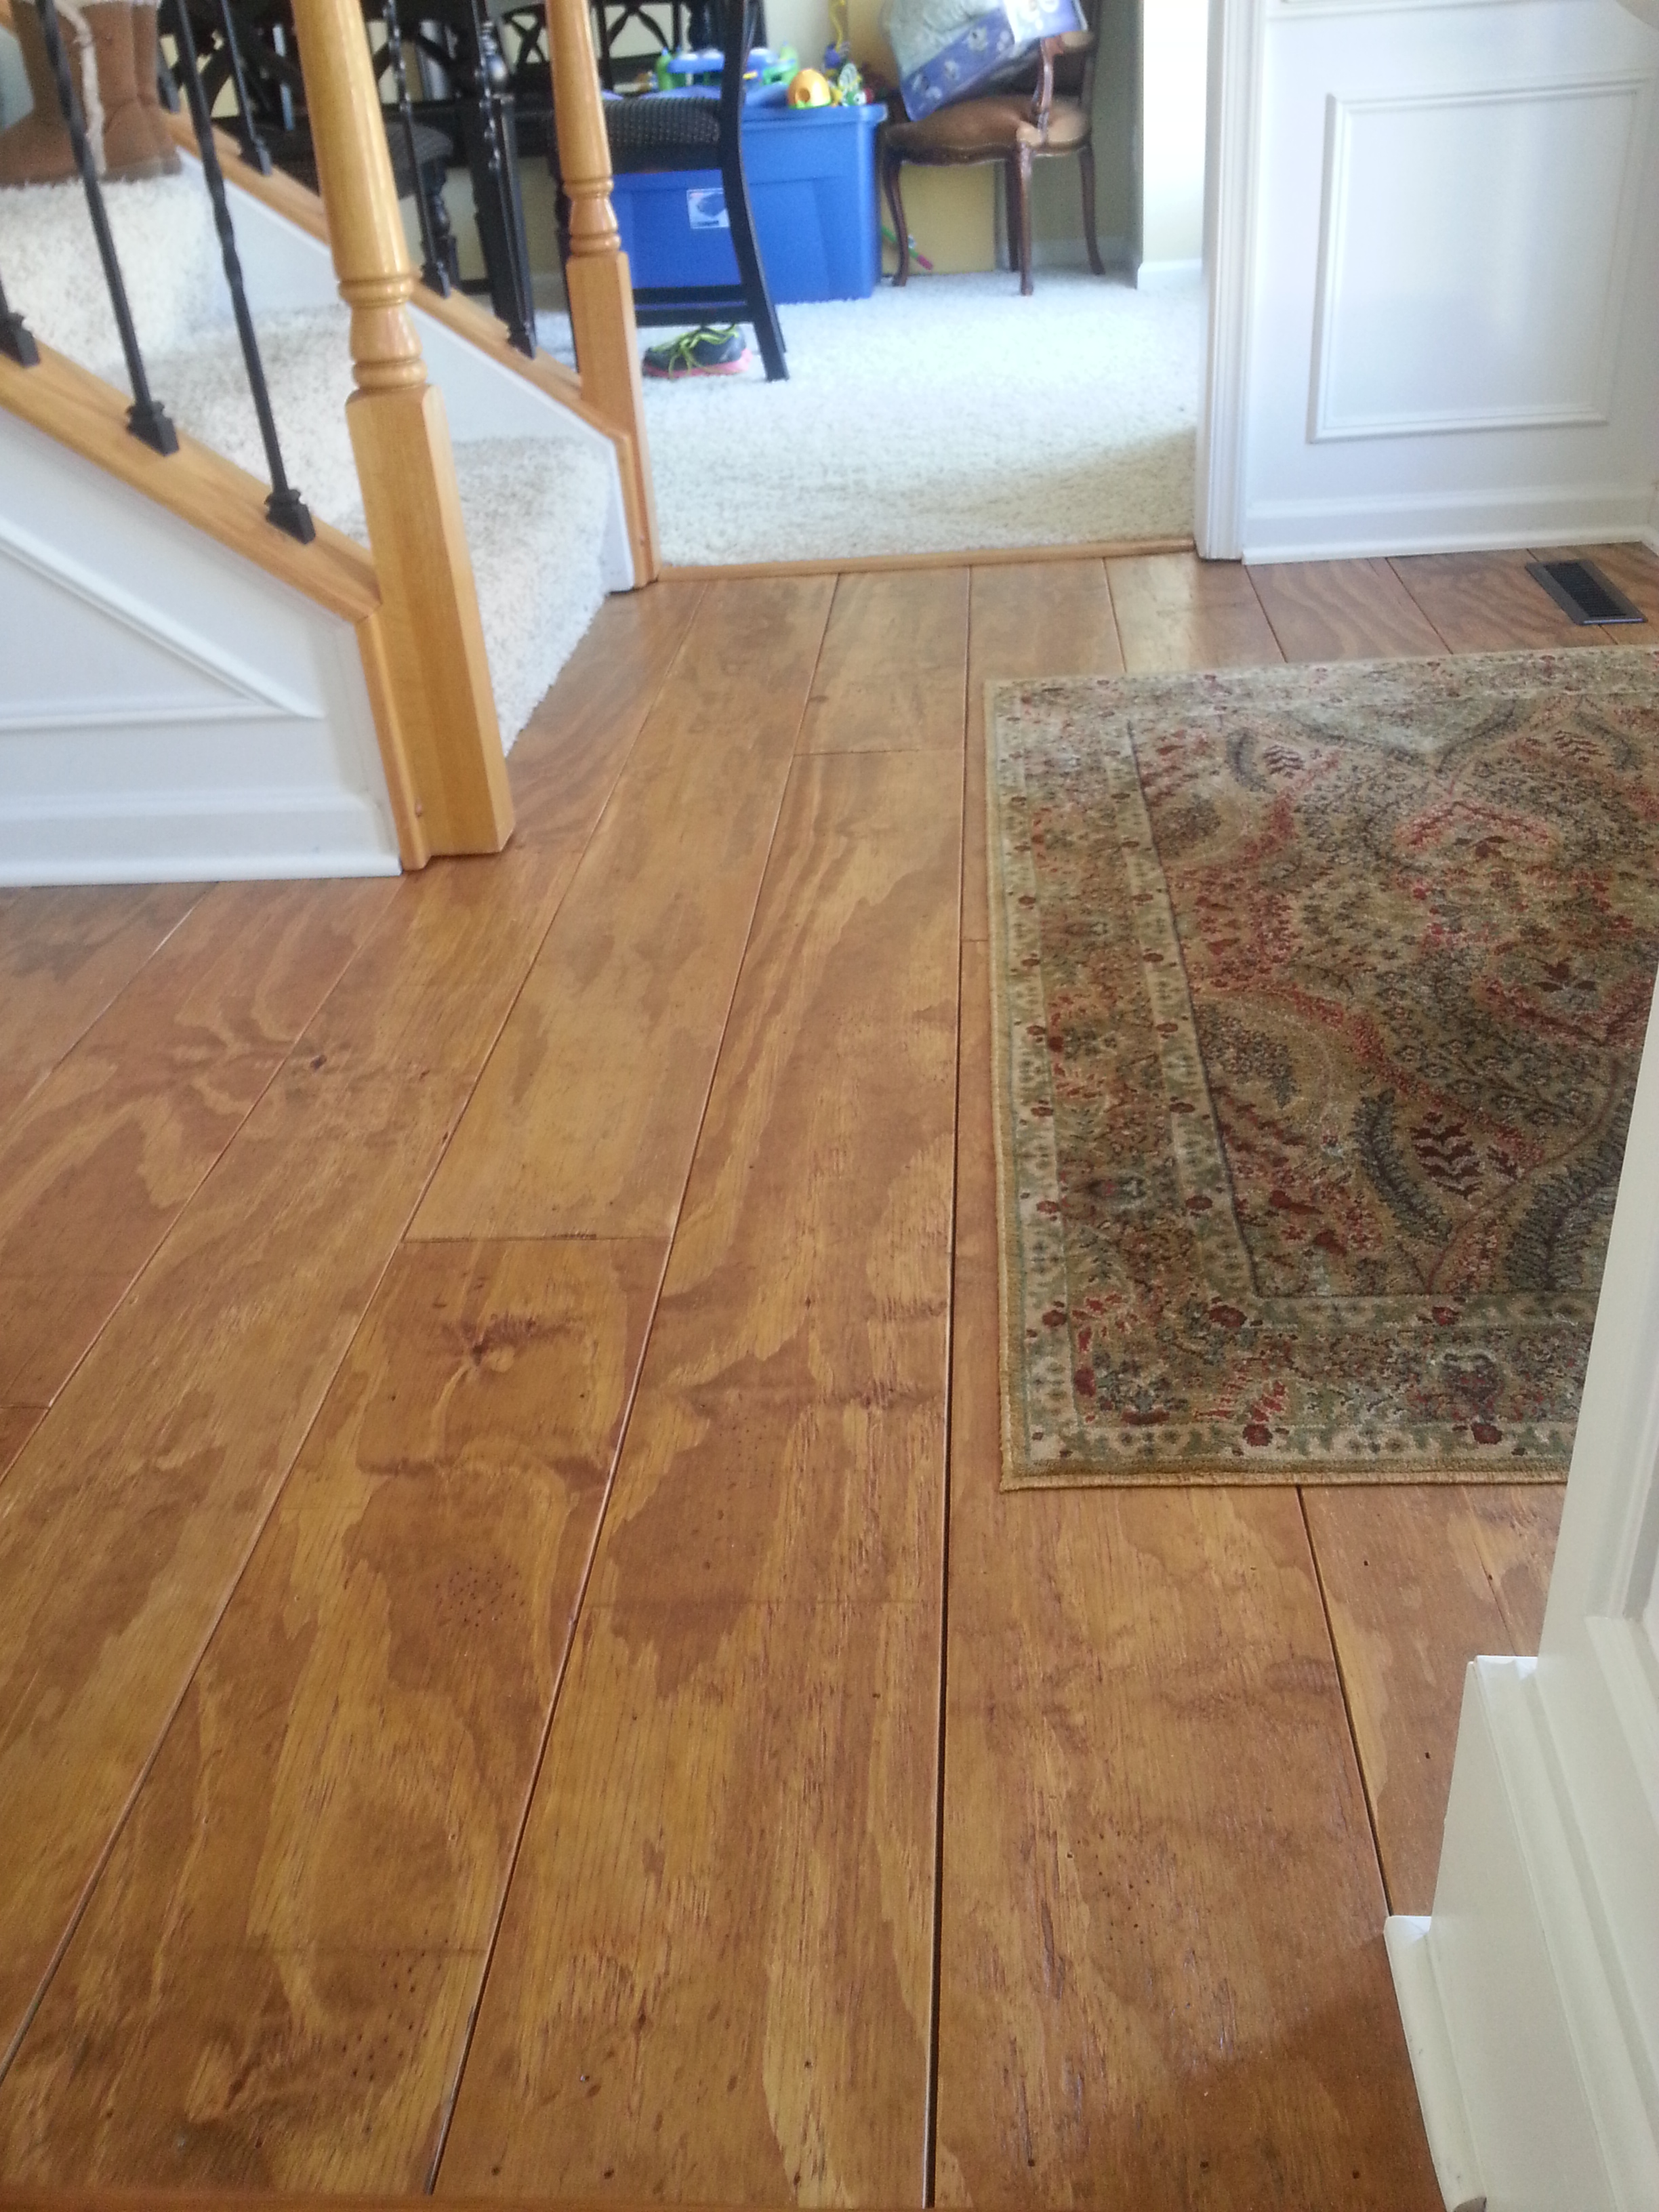 Remodelaholic diy plywood flooring pros and cons tips addicted2projects plywood plank flooring dailygadgetfo Gallery